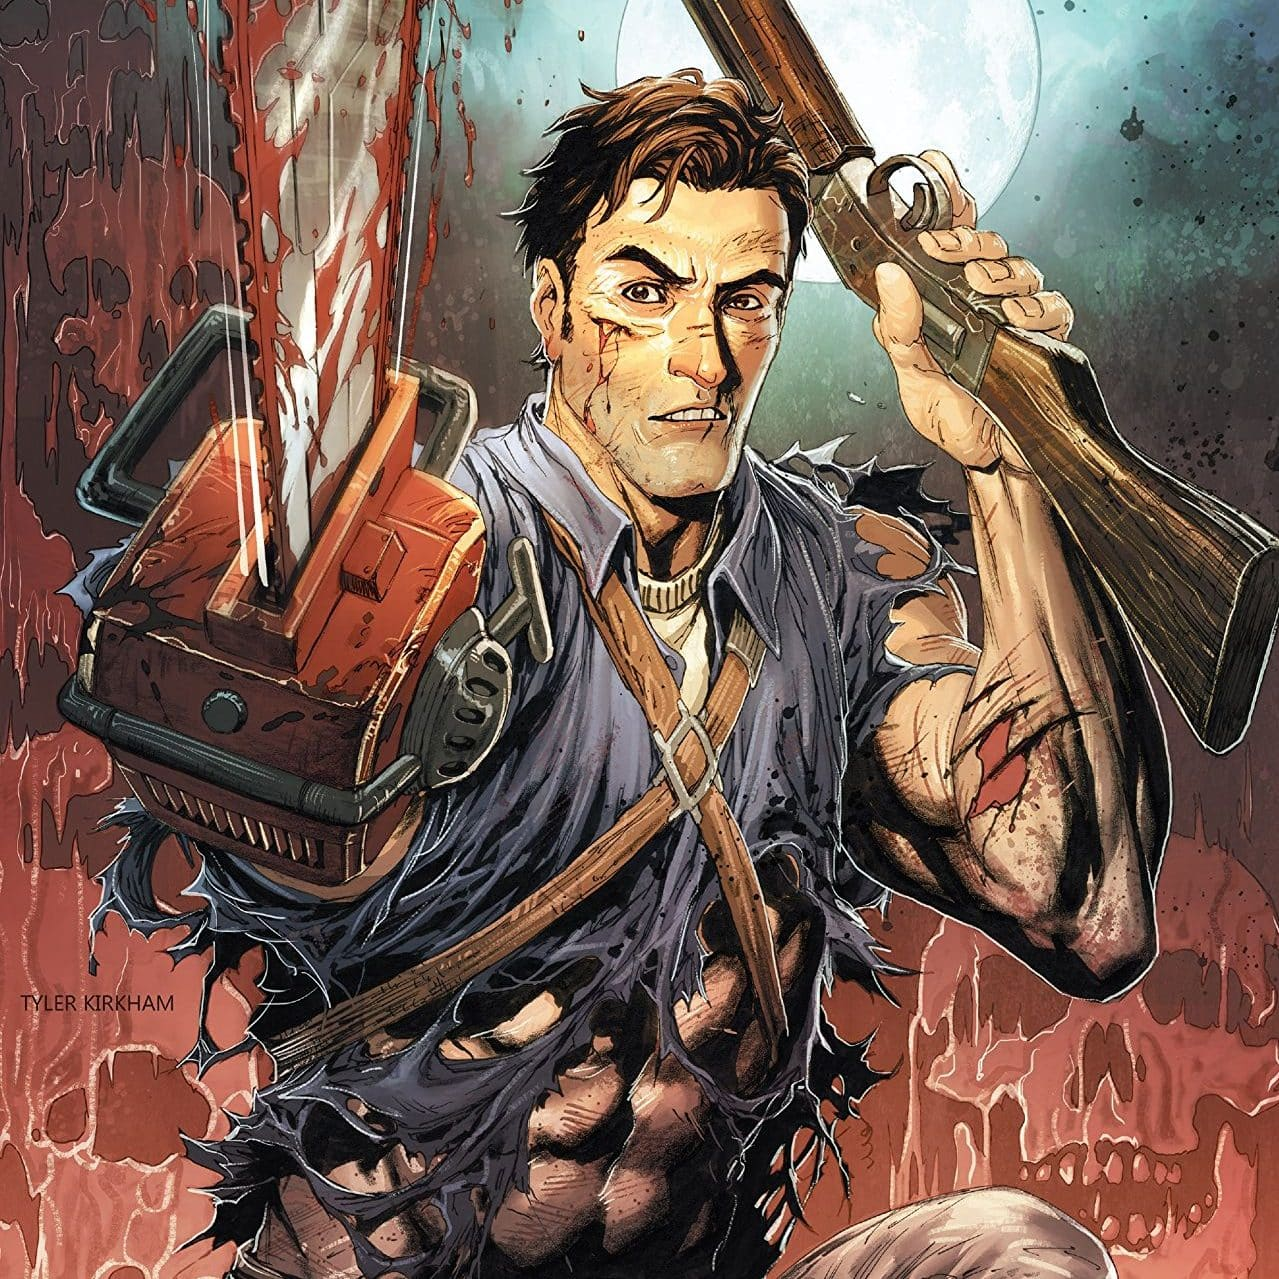 534558. SX1280 QL80 TTD e1571844072466 Bruce Campbell's Plastic Surgery and 19 Other Things You Didn't Know About Army of Darkness